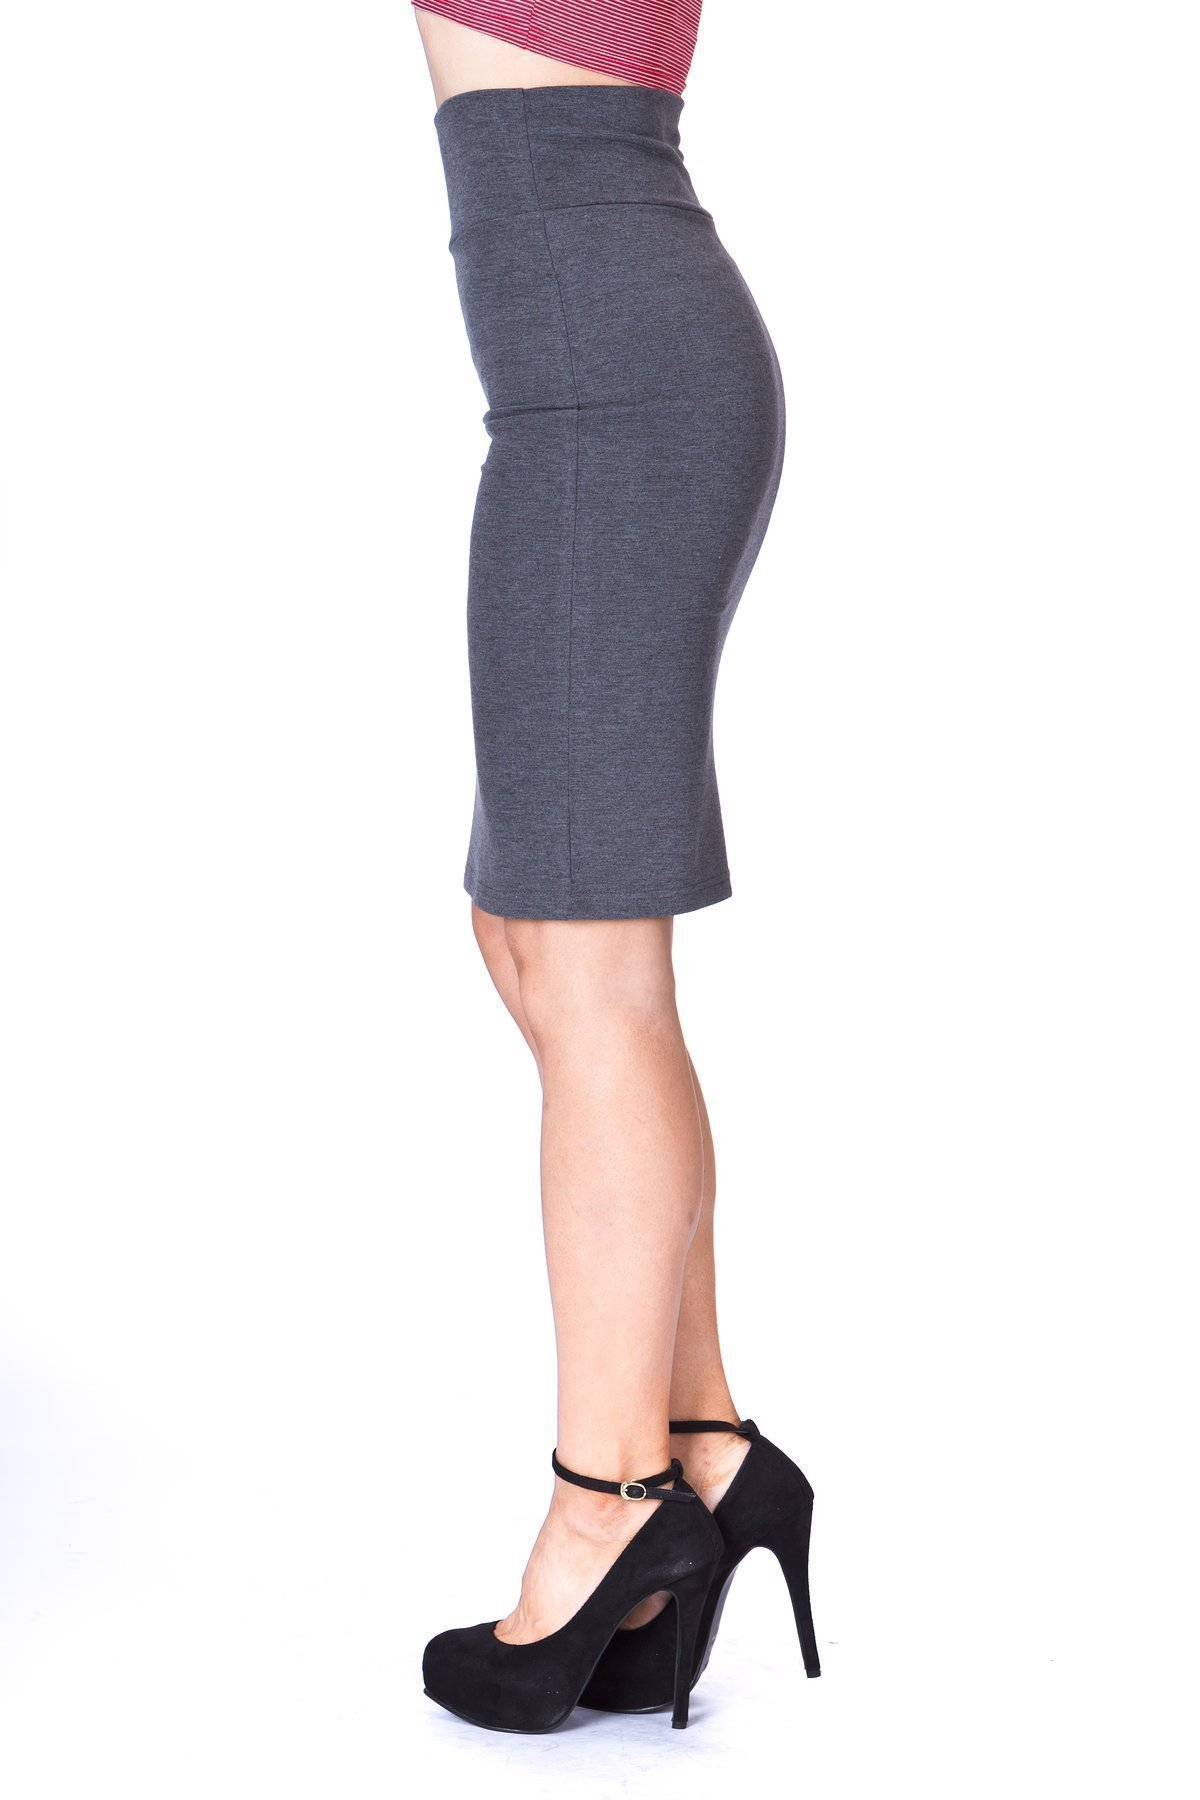 Every Occasion Stretch Pull on Wide High Waist Bodycon Pencil Knee Length Midi Skirt Charcoal 5